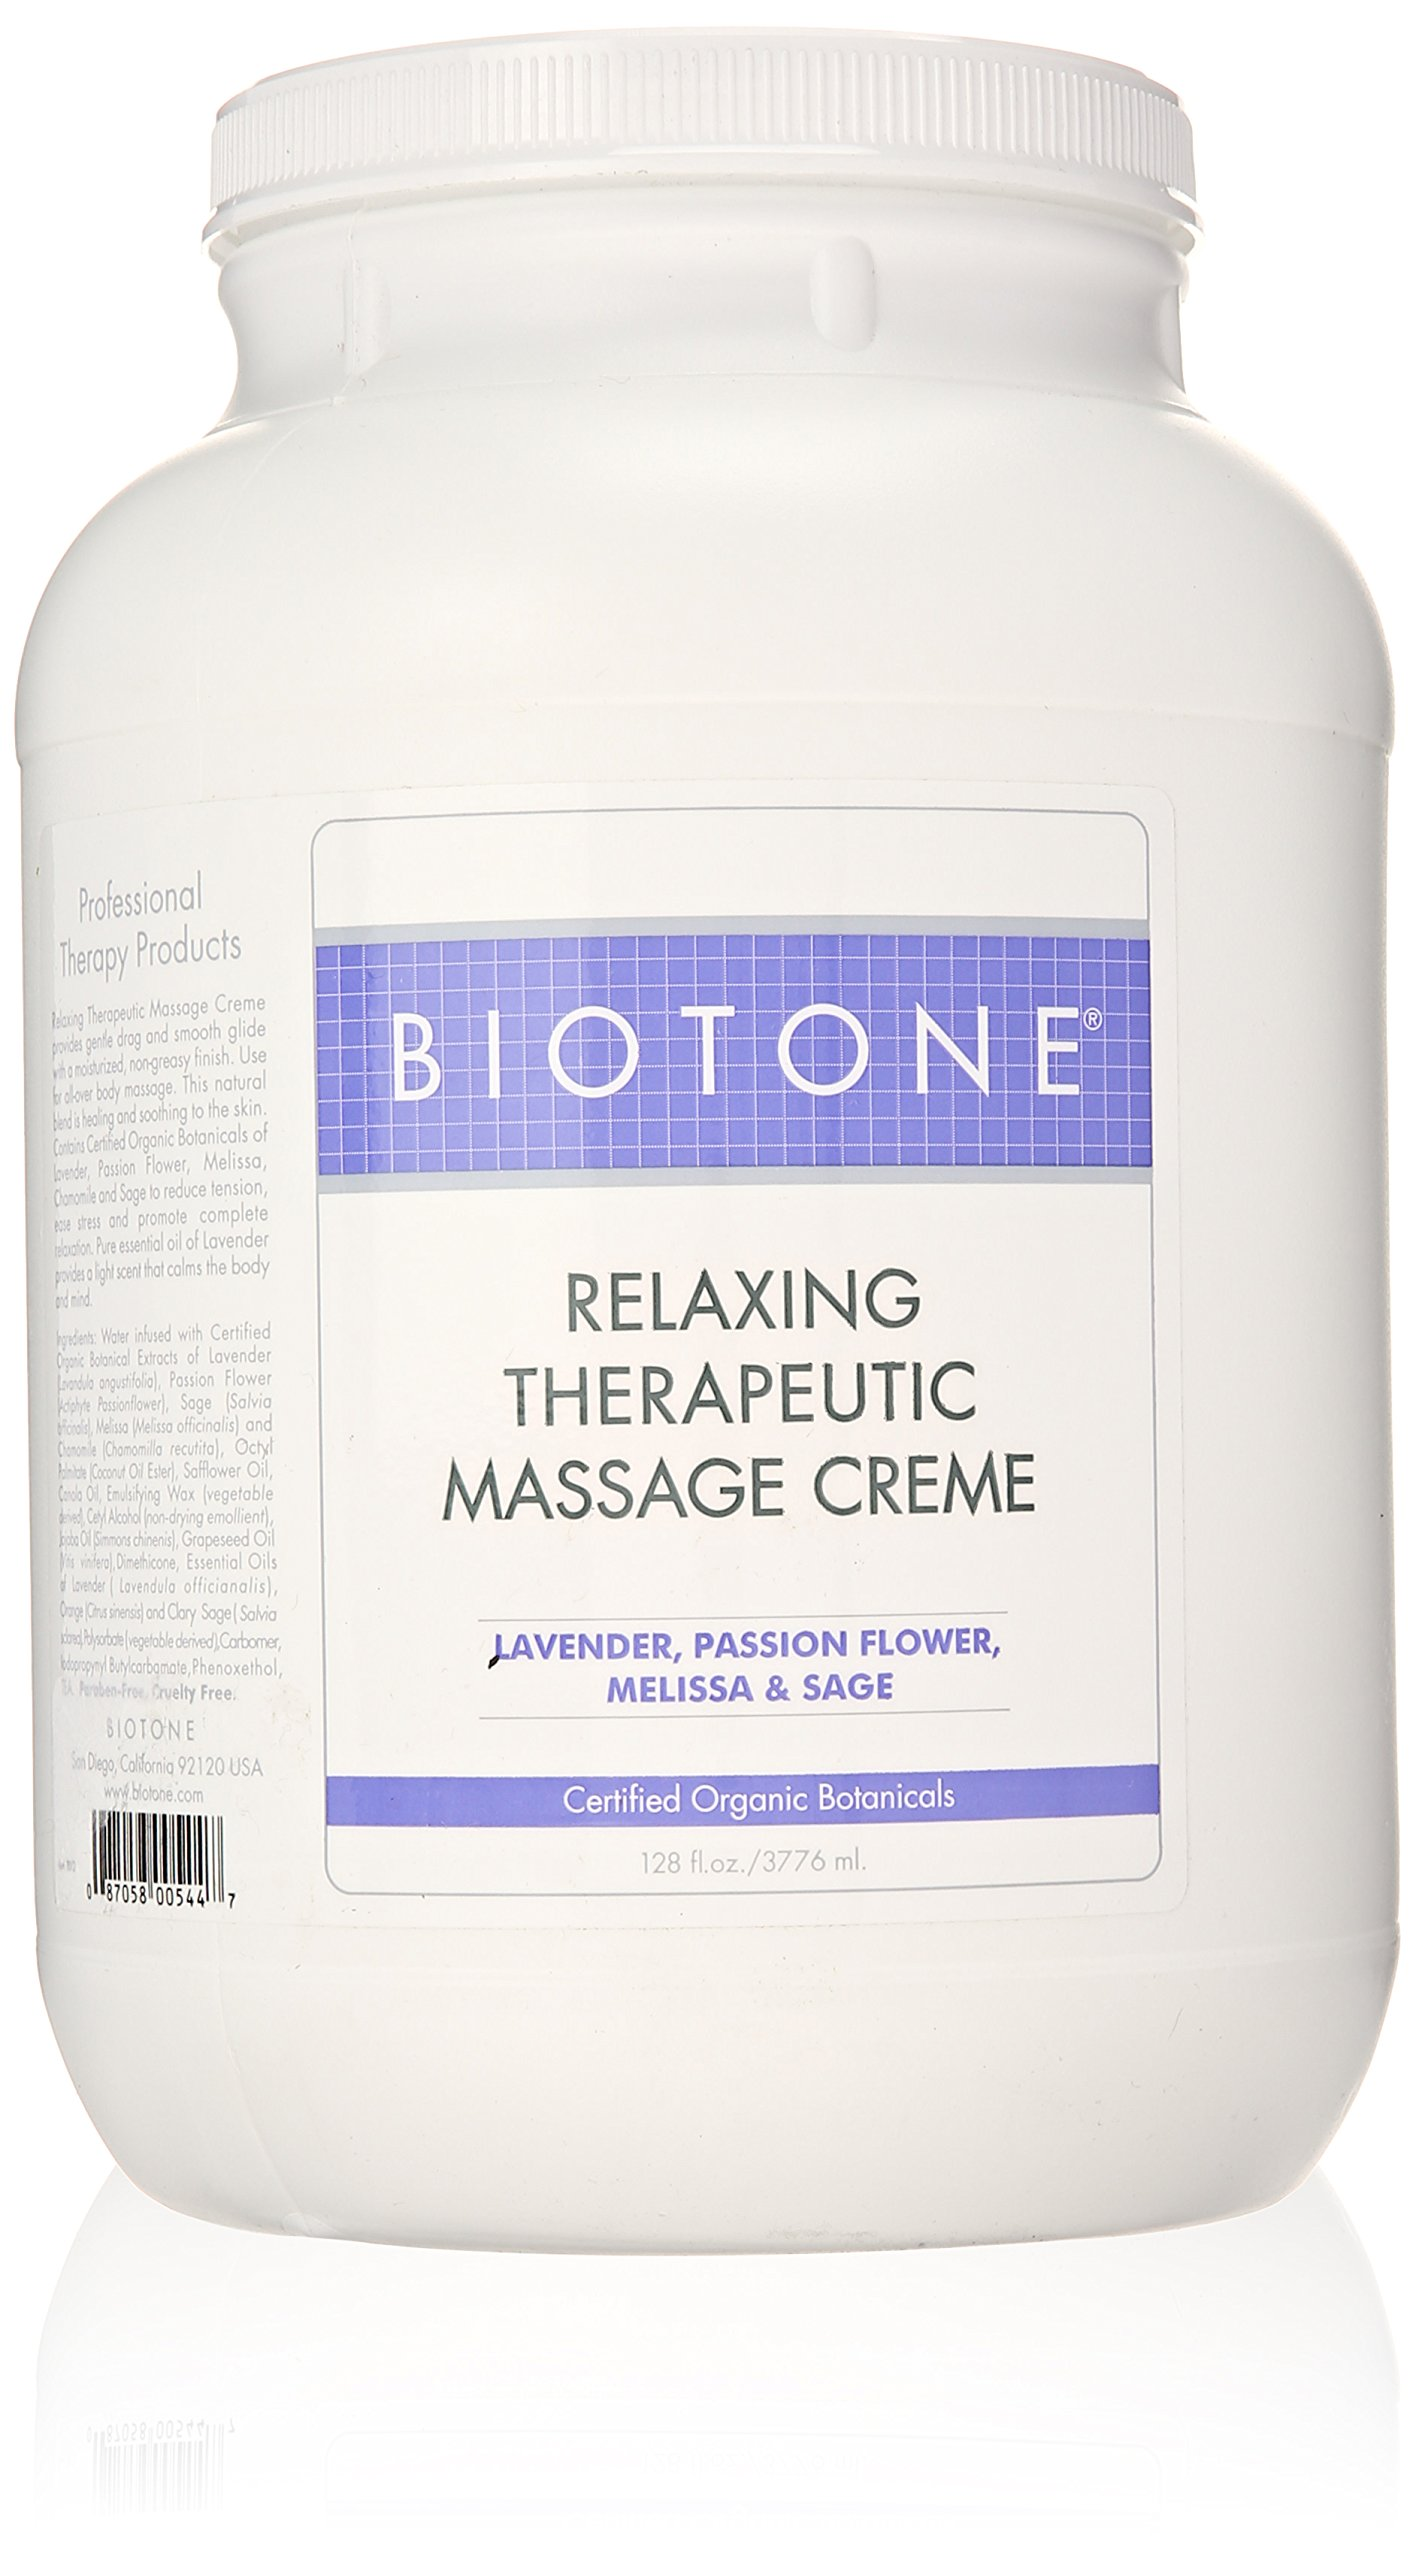 Biotone Relaxing Therapeutic Massage Cream, 1 Gallon (128 Ounce) by Biotone